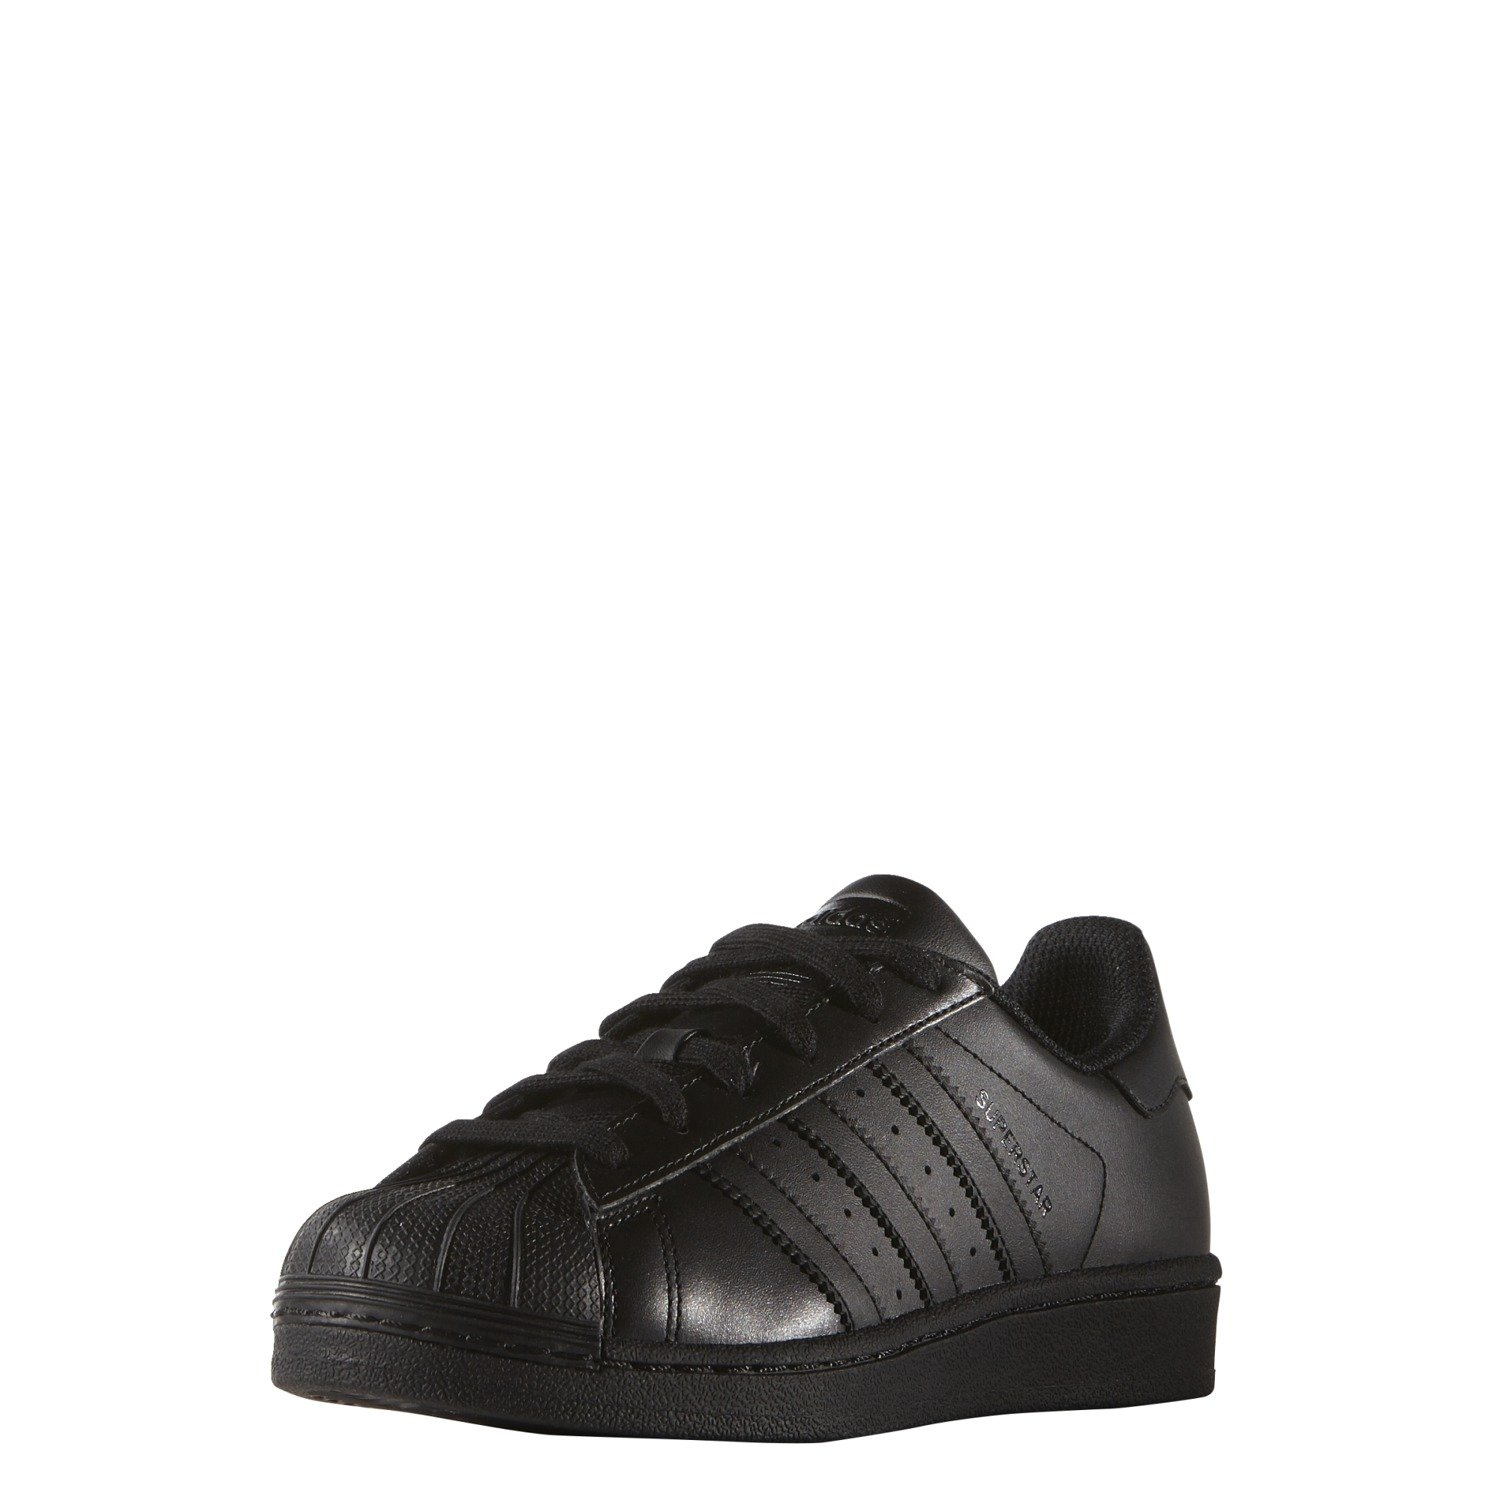 BUTY JUNIOR ADIDAS SUPERSTAR FOUNDATION B25724